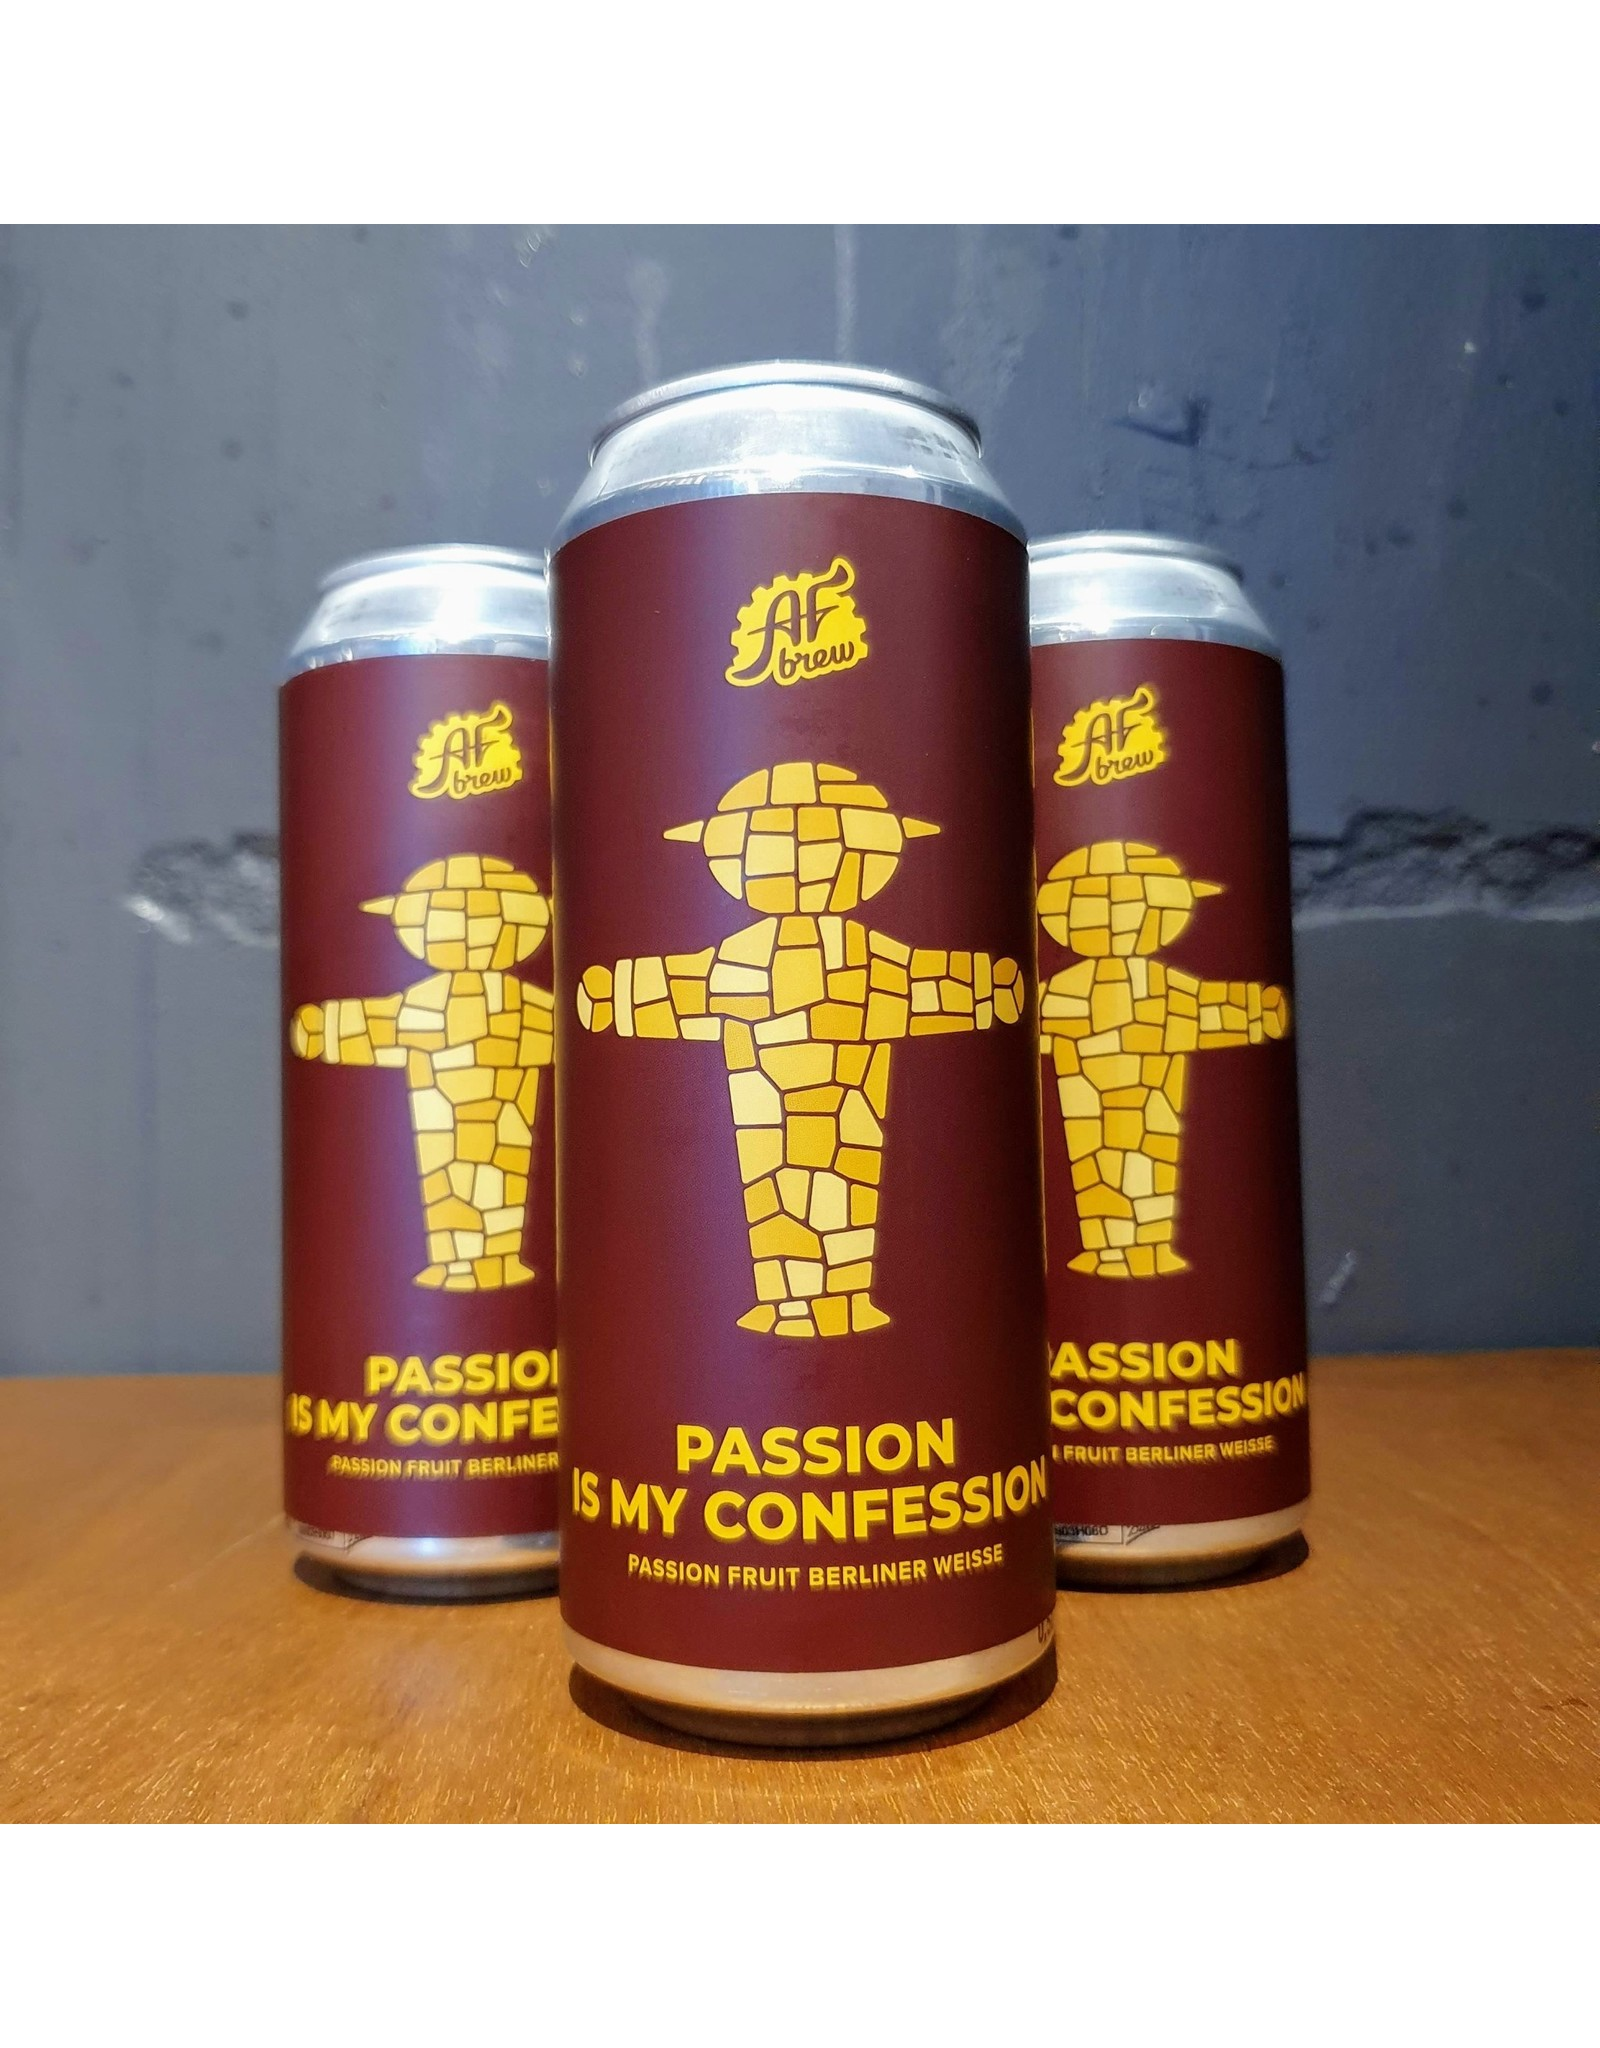 afbrew AFbrew: Passion is my Confession